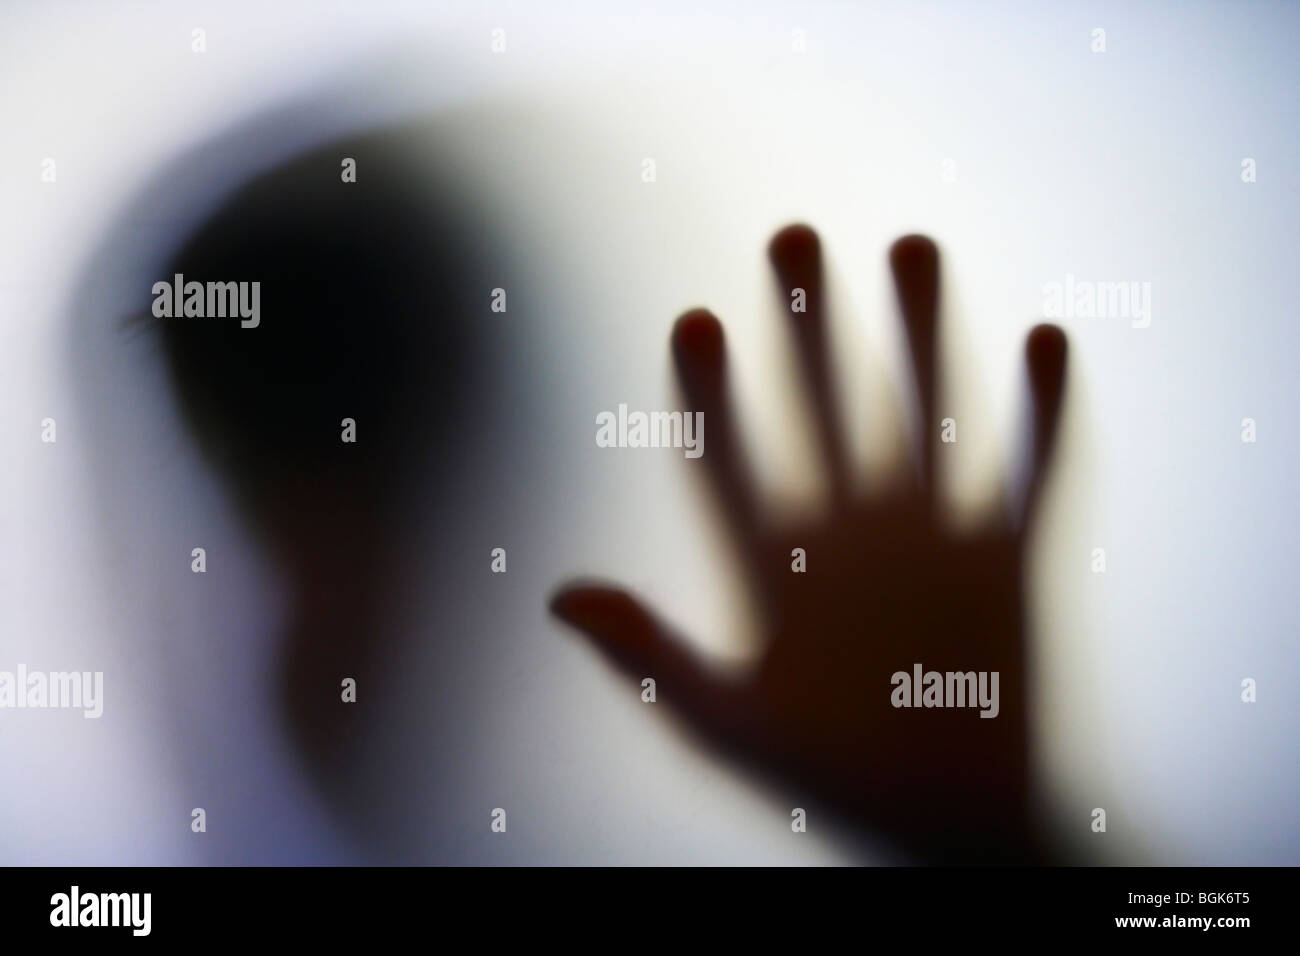 Boy through frosted glass - Stock Image